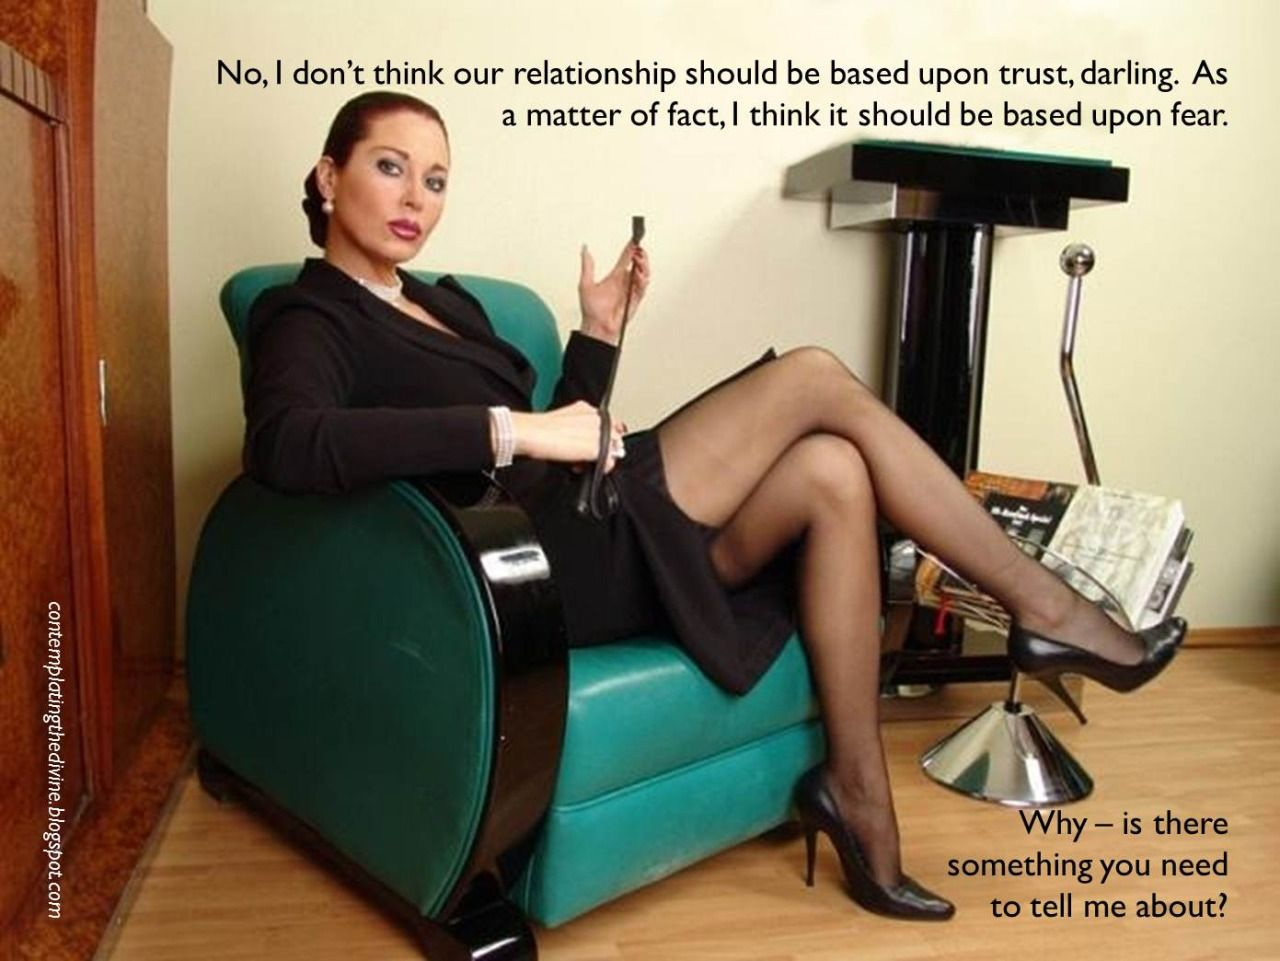 Captioned Femdom Situations | Awesome | Pinterest